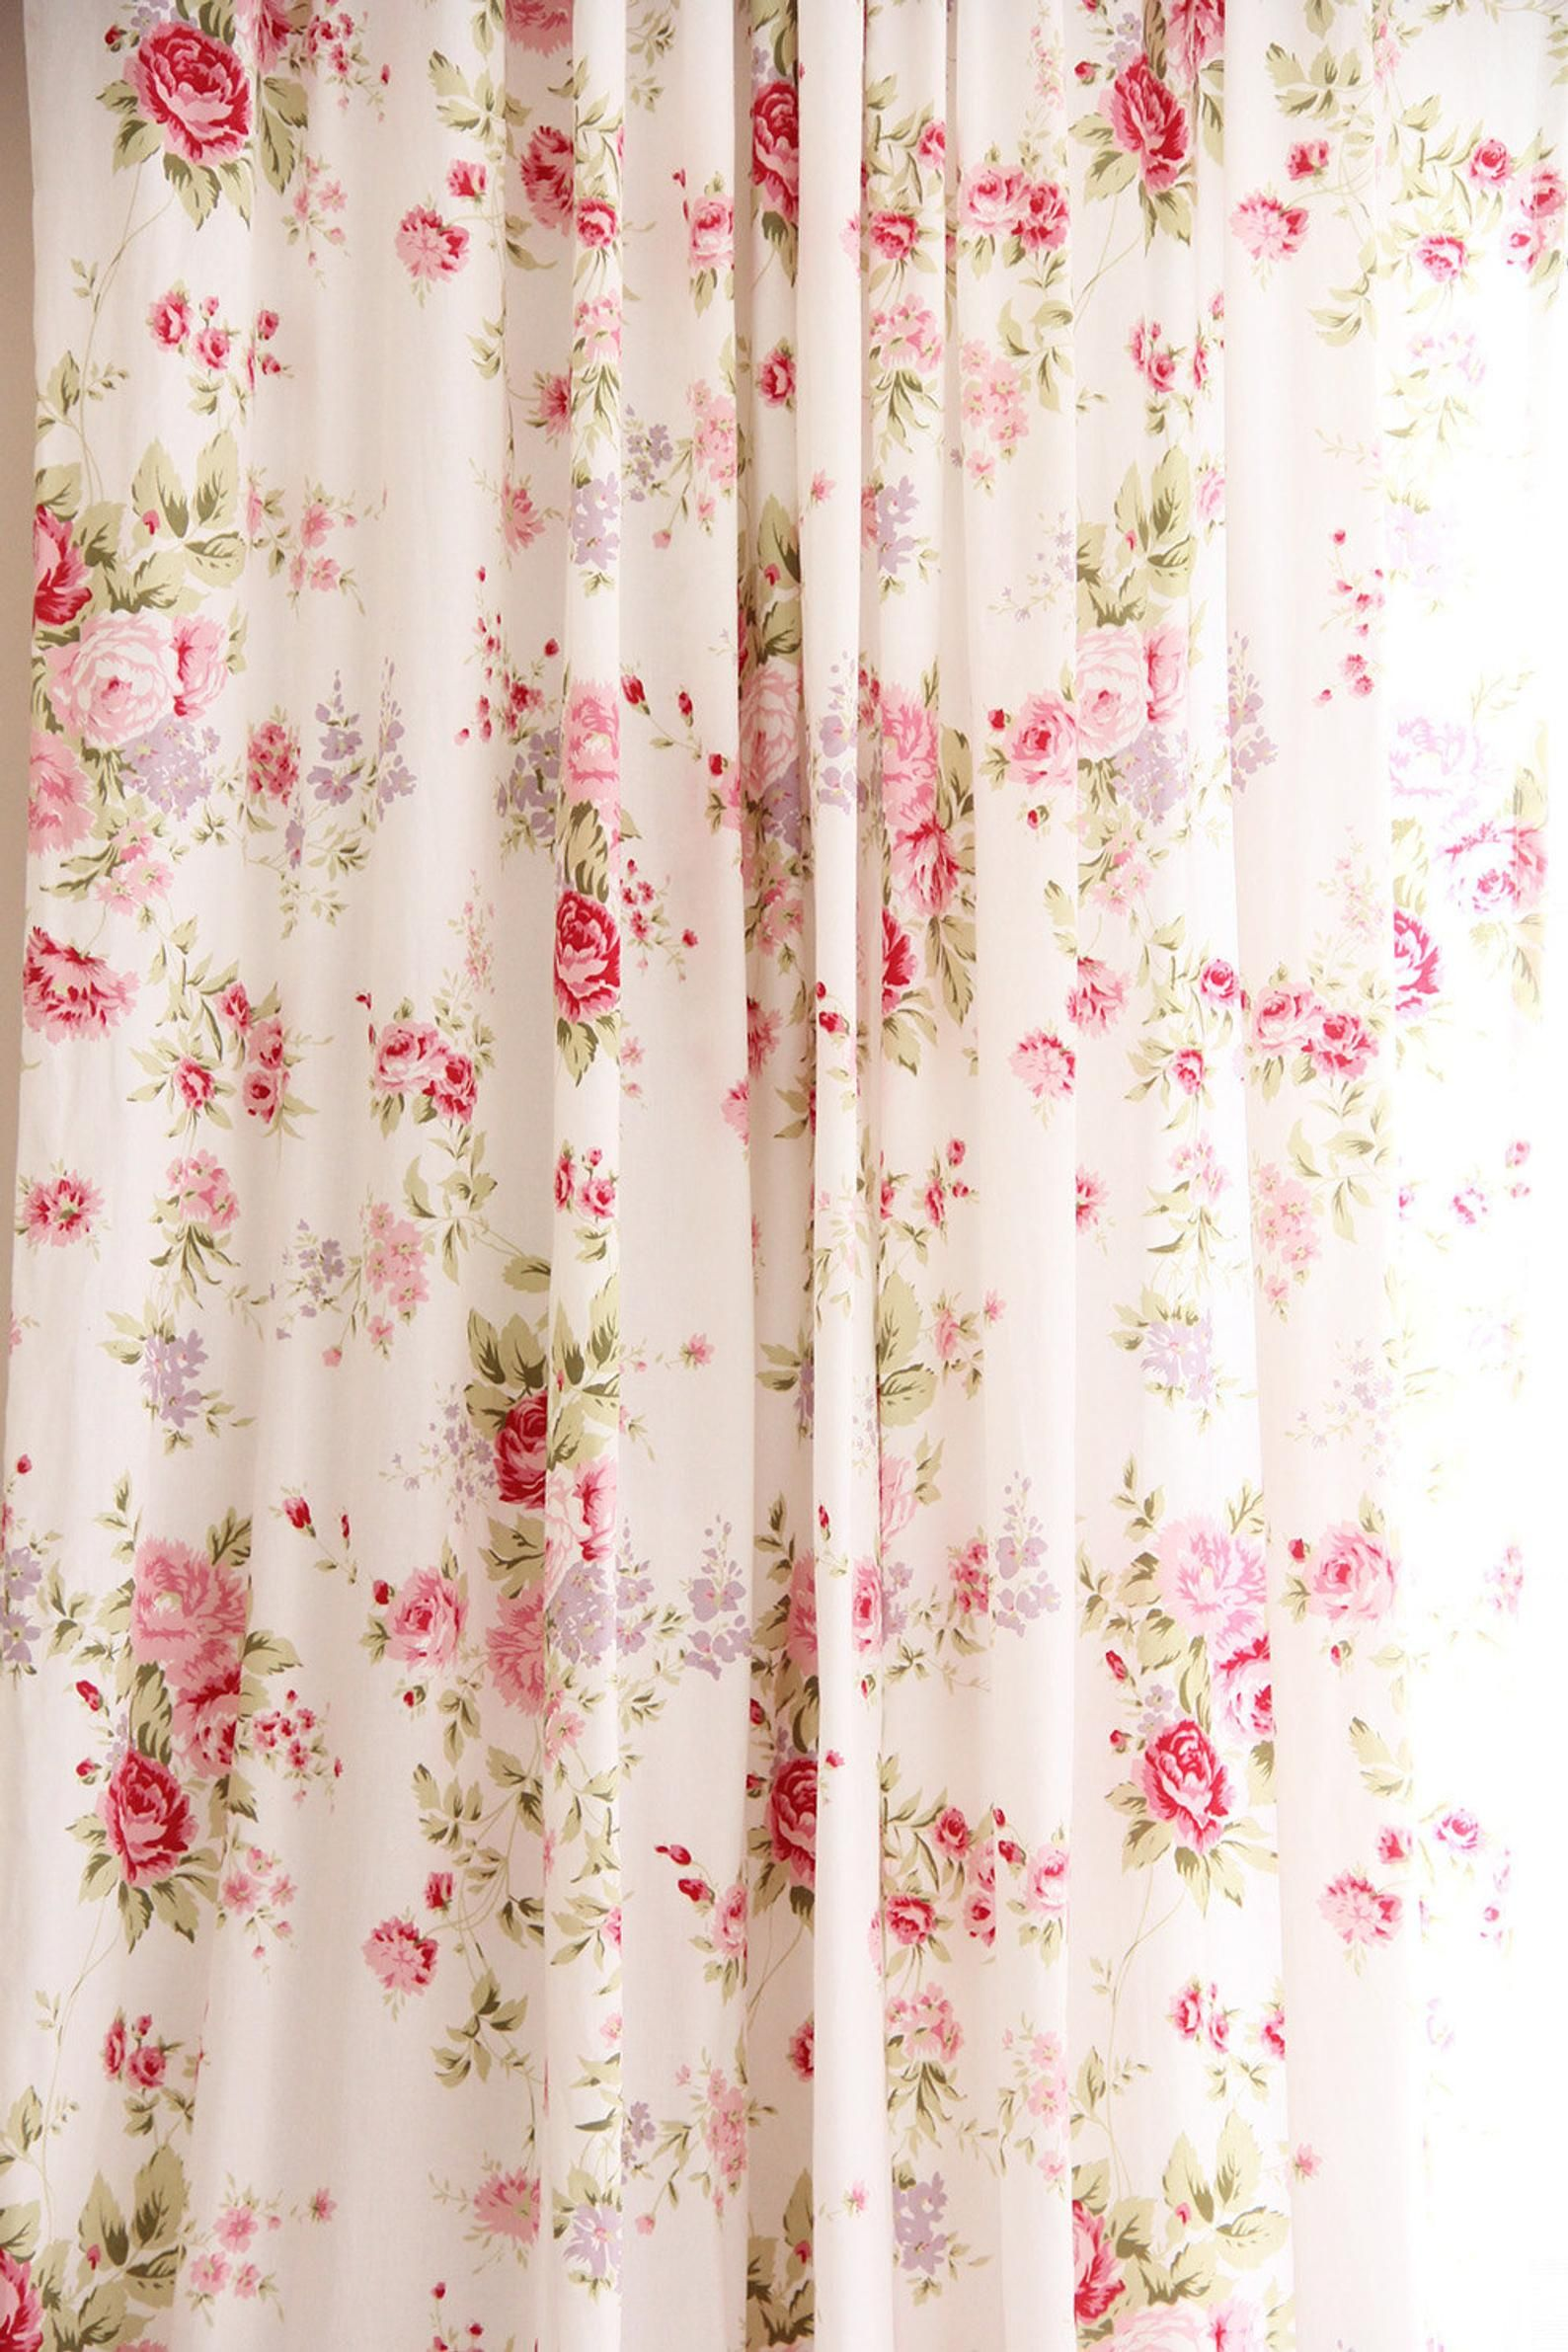 White Pink Romance Farmhouse Cottage French Country Shabby Etsy In 2020 Shabby Chic Rose Curtains Shabby Chic Curtains Shabby Chic Diy